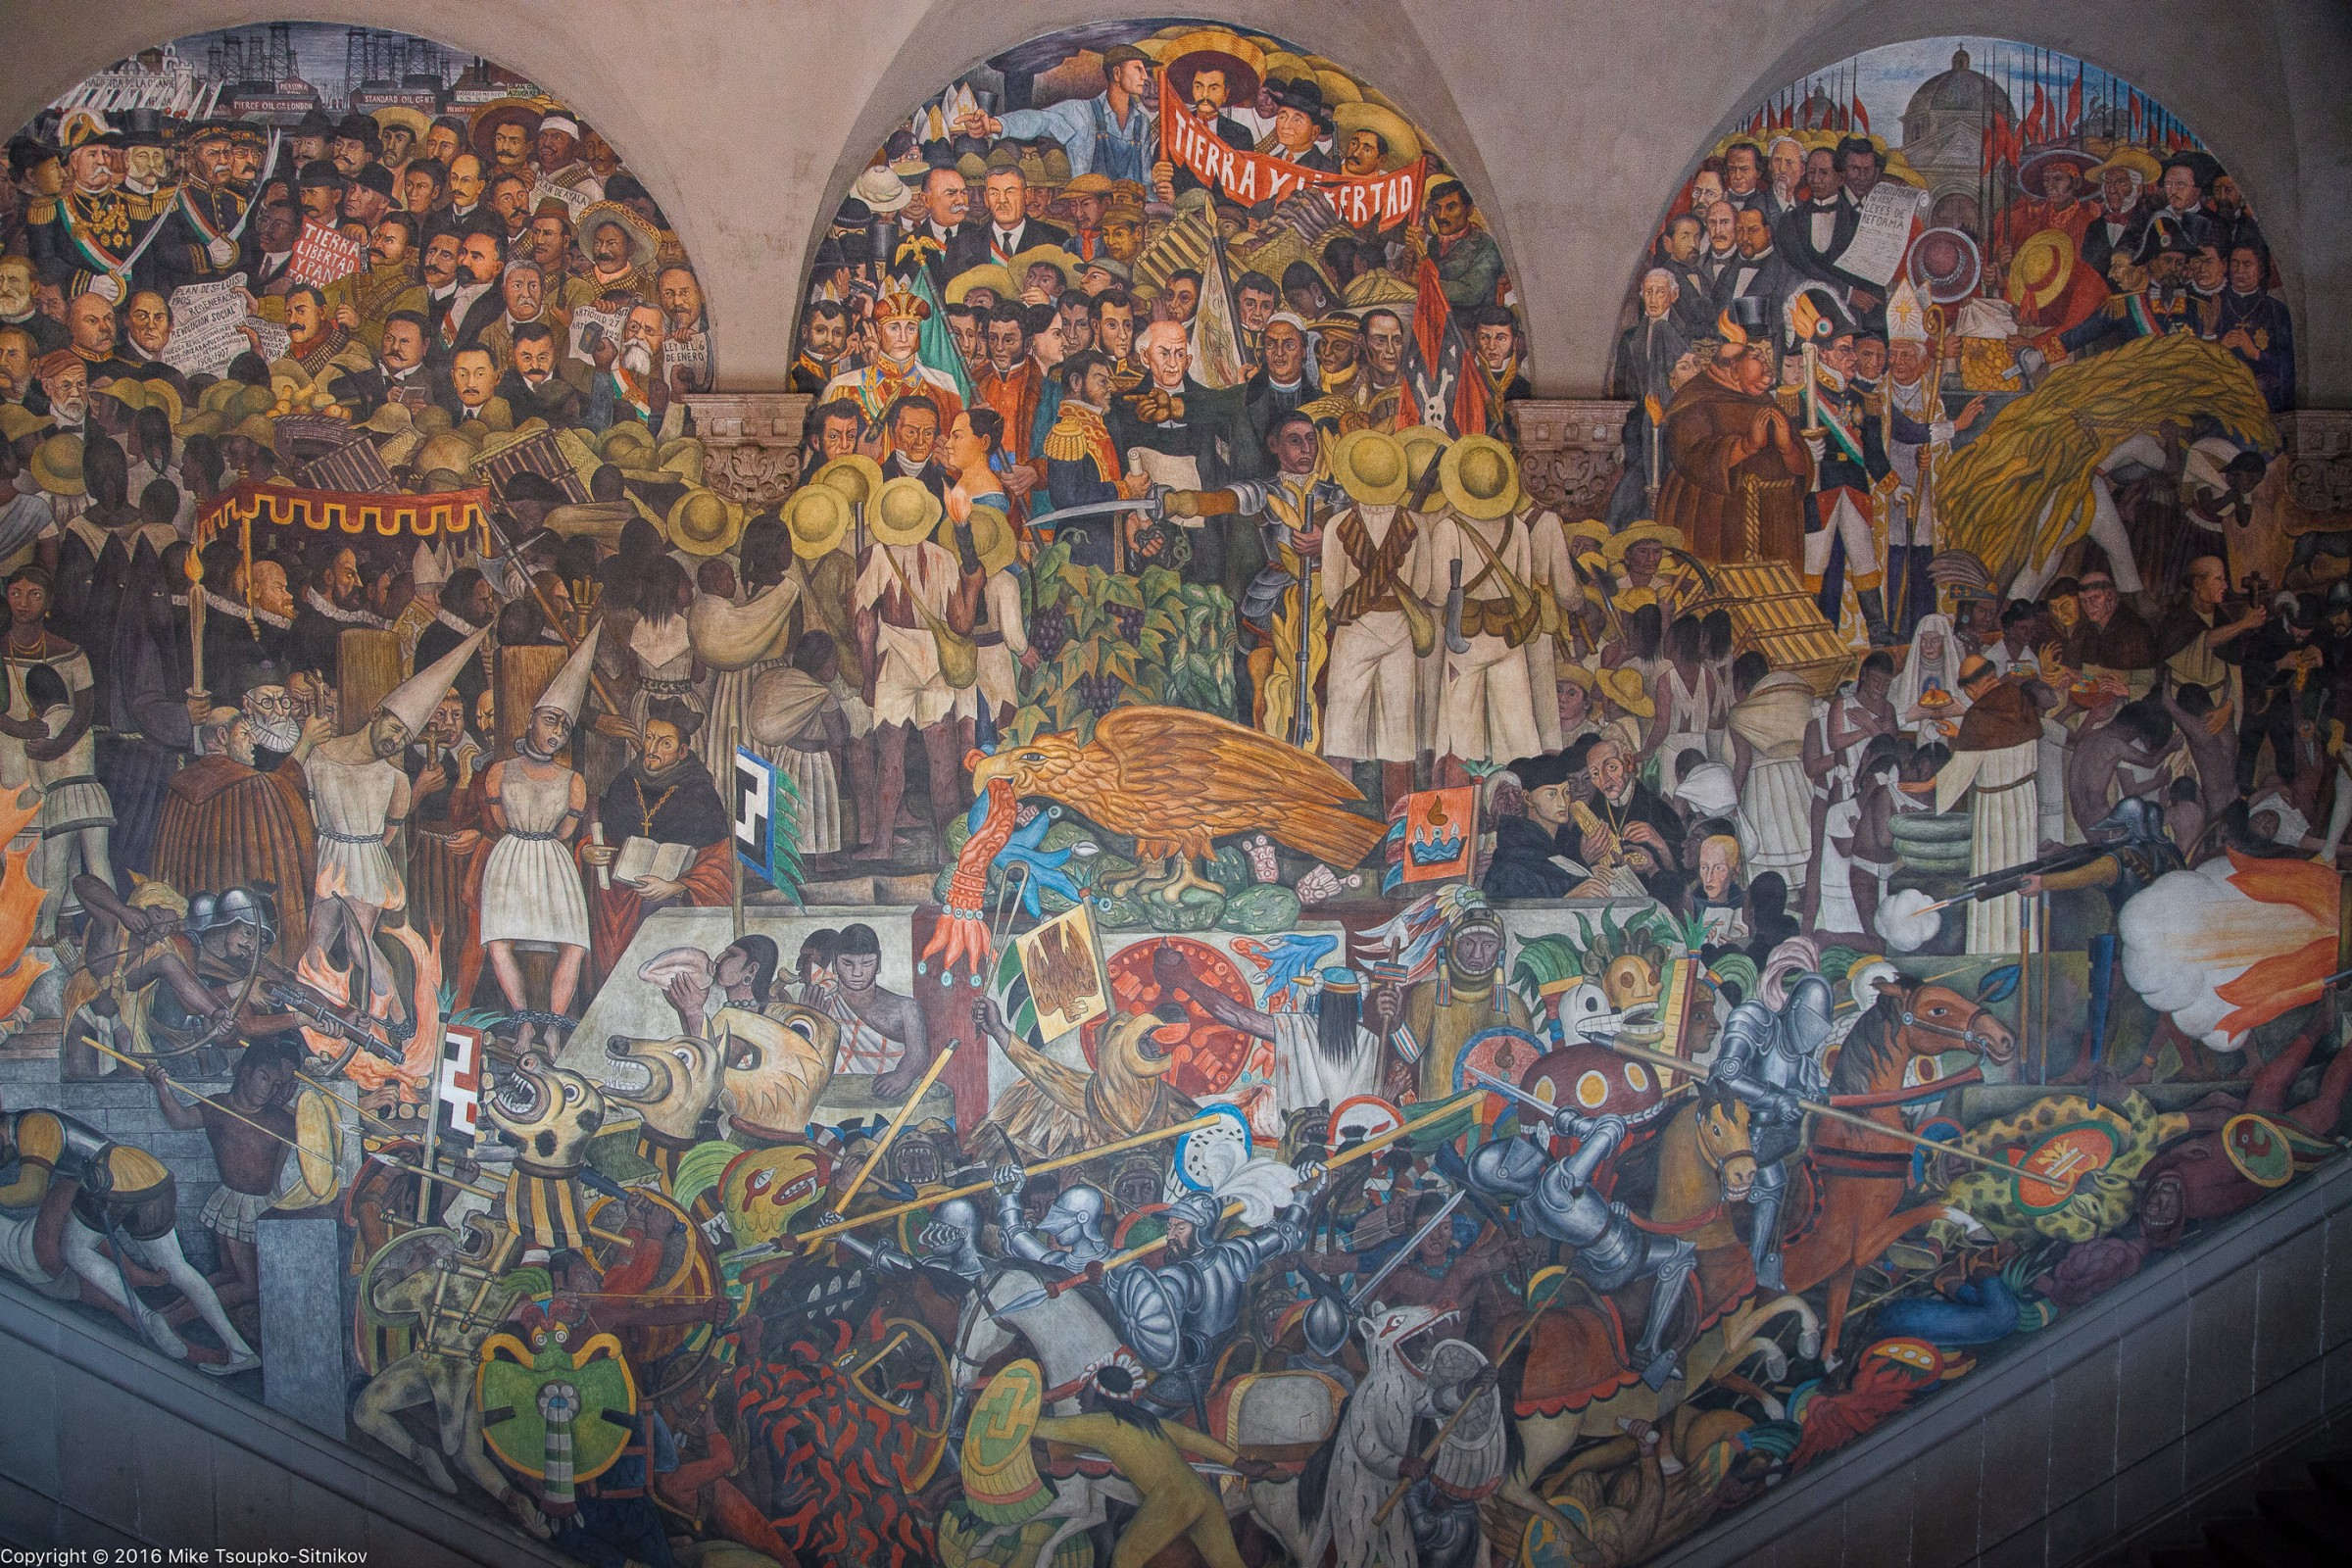 Diego rivera in mexico city demerjee travels more for Diego rivera mural paintings